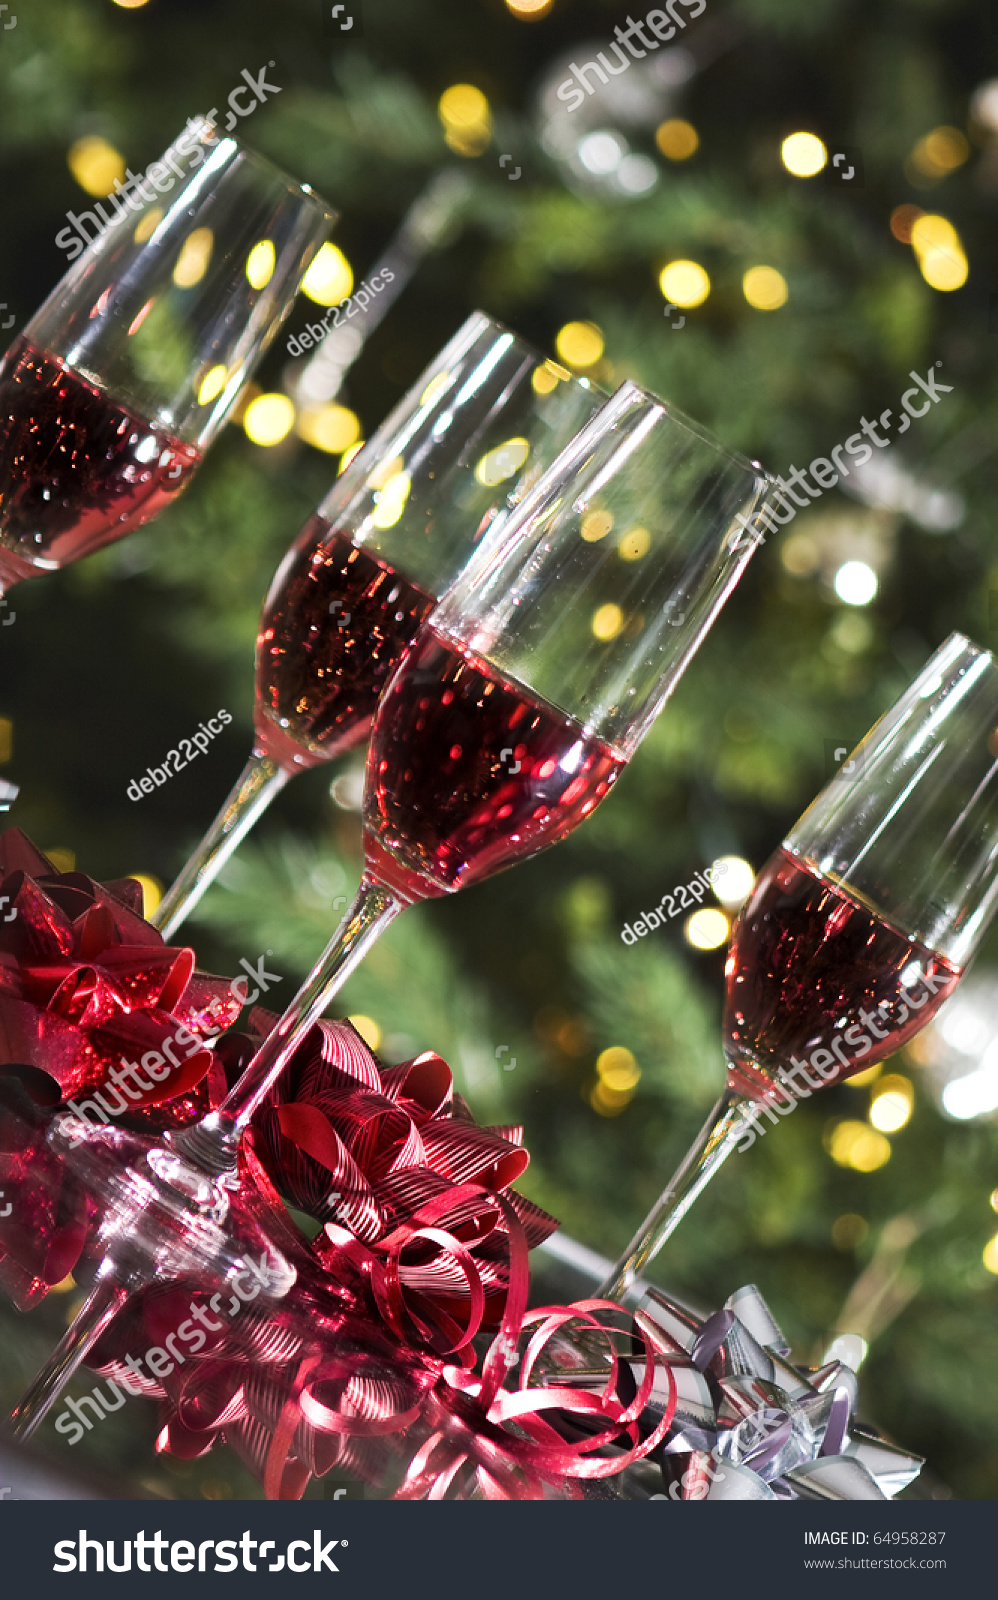 Four Wine Glasses And Red Bows By Christmas Tree Lights Stock Photo 64958287 : Shutterstock